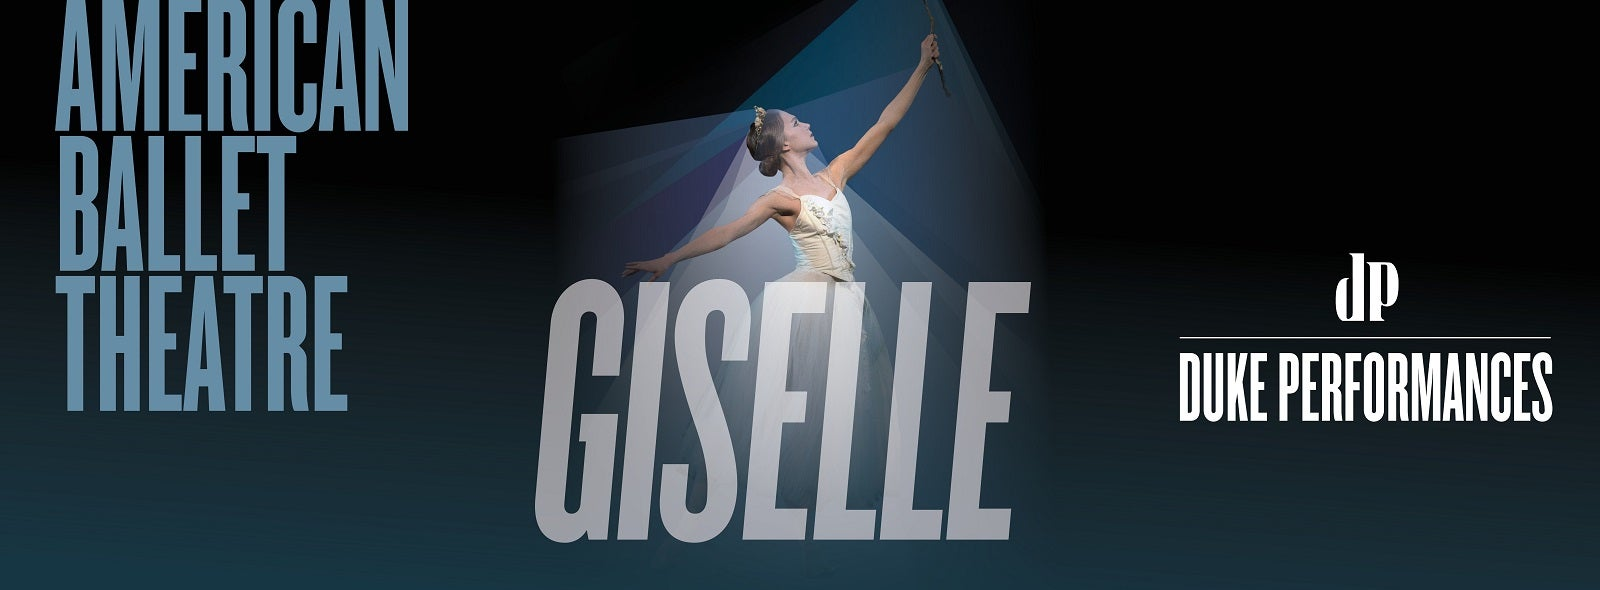 American Ballet Theatre Giselle